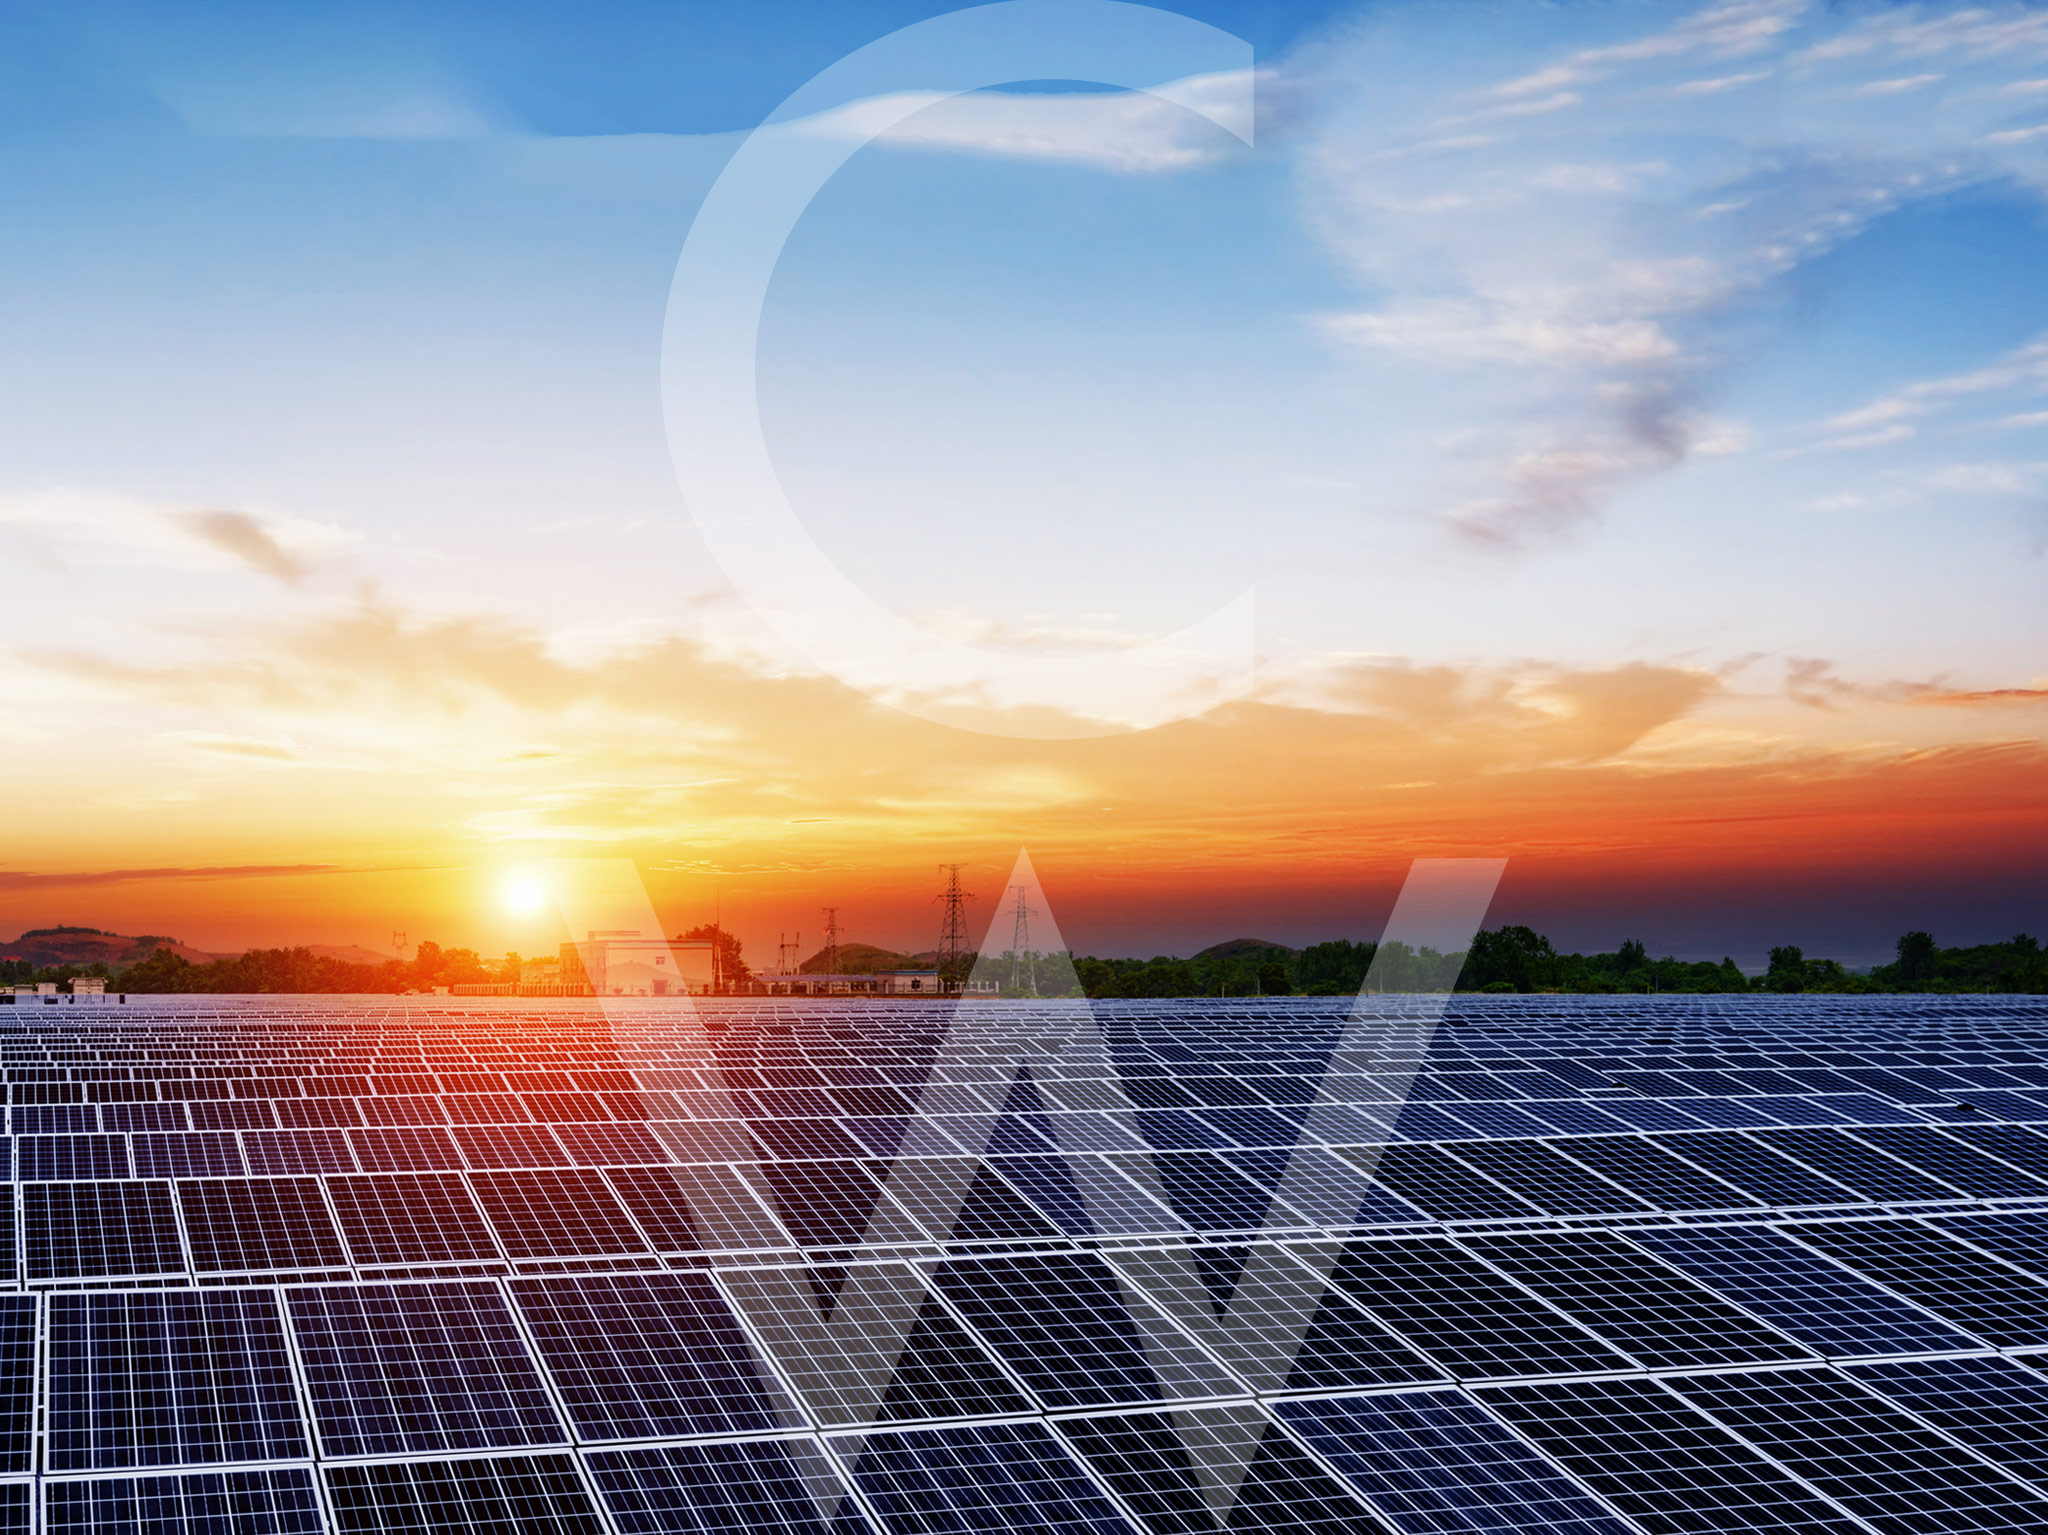 This is a landscape image of solar panels in a field at sunset.